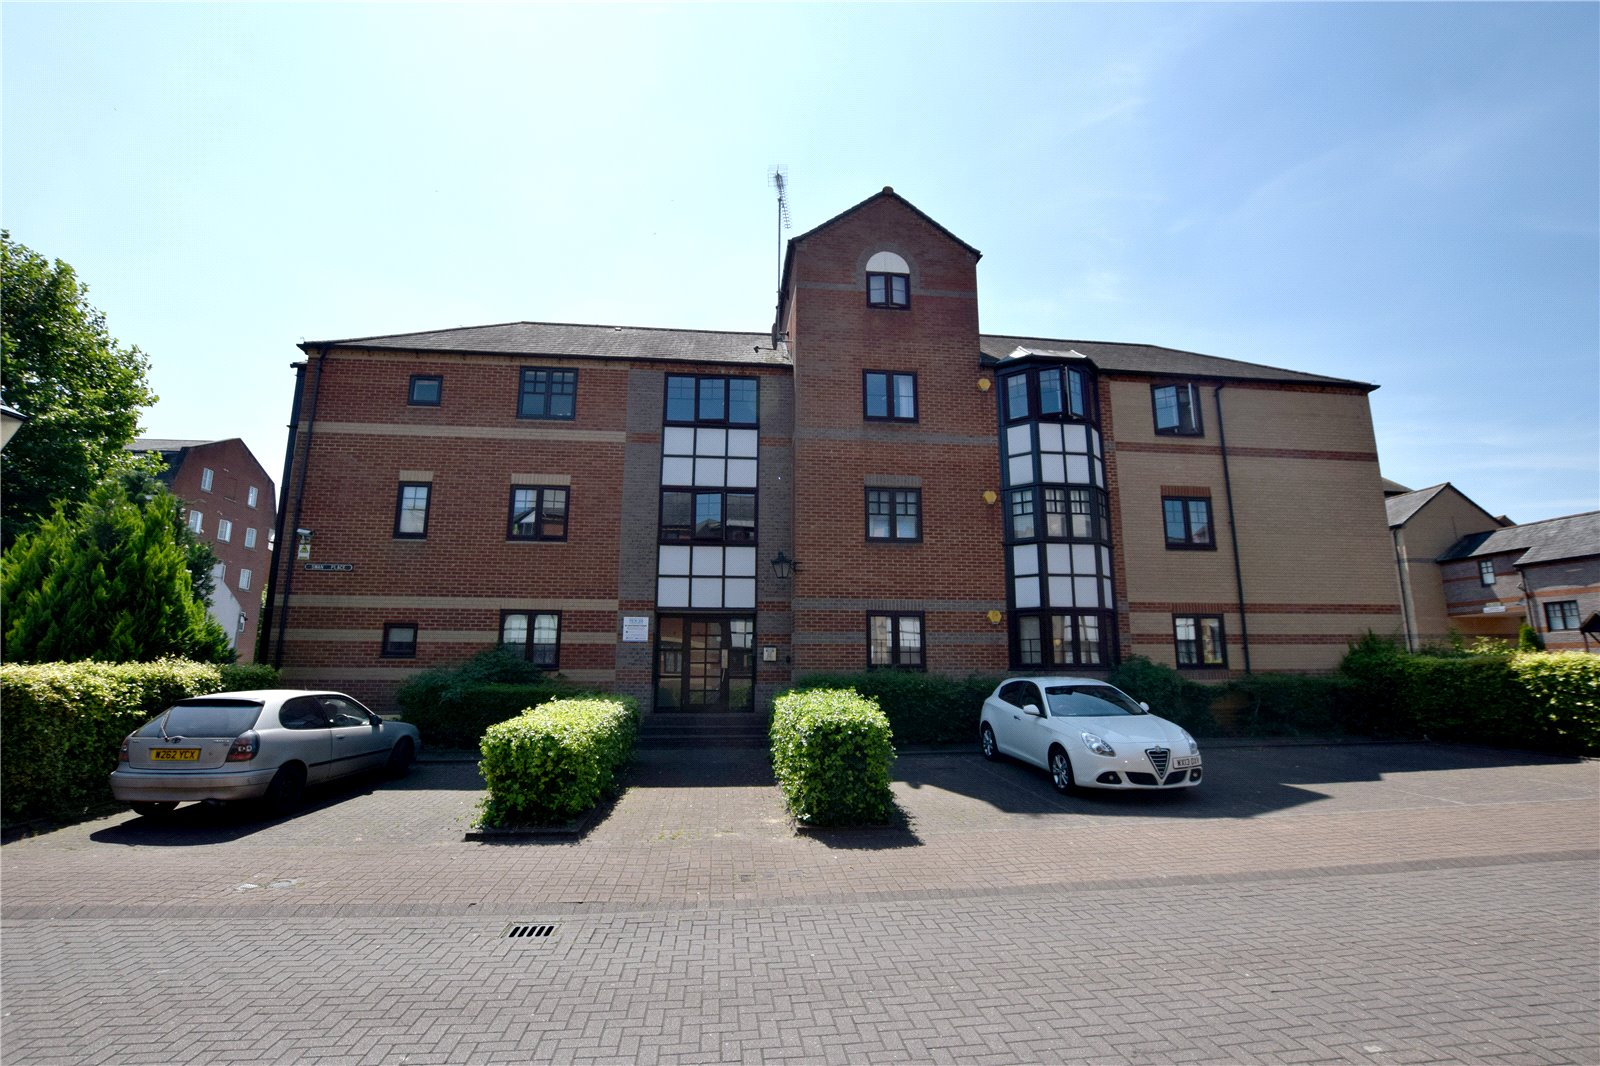 2 Bedrooms Apartment Flat for sale in Swan Place, Reading, Berkshire, RG1